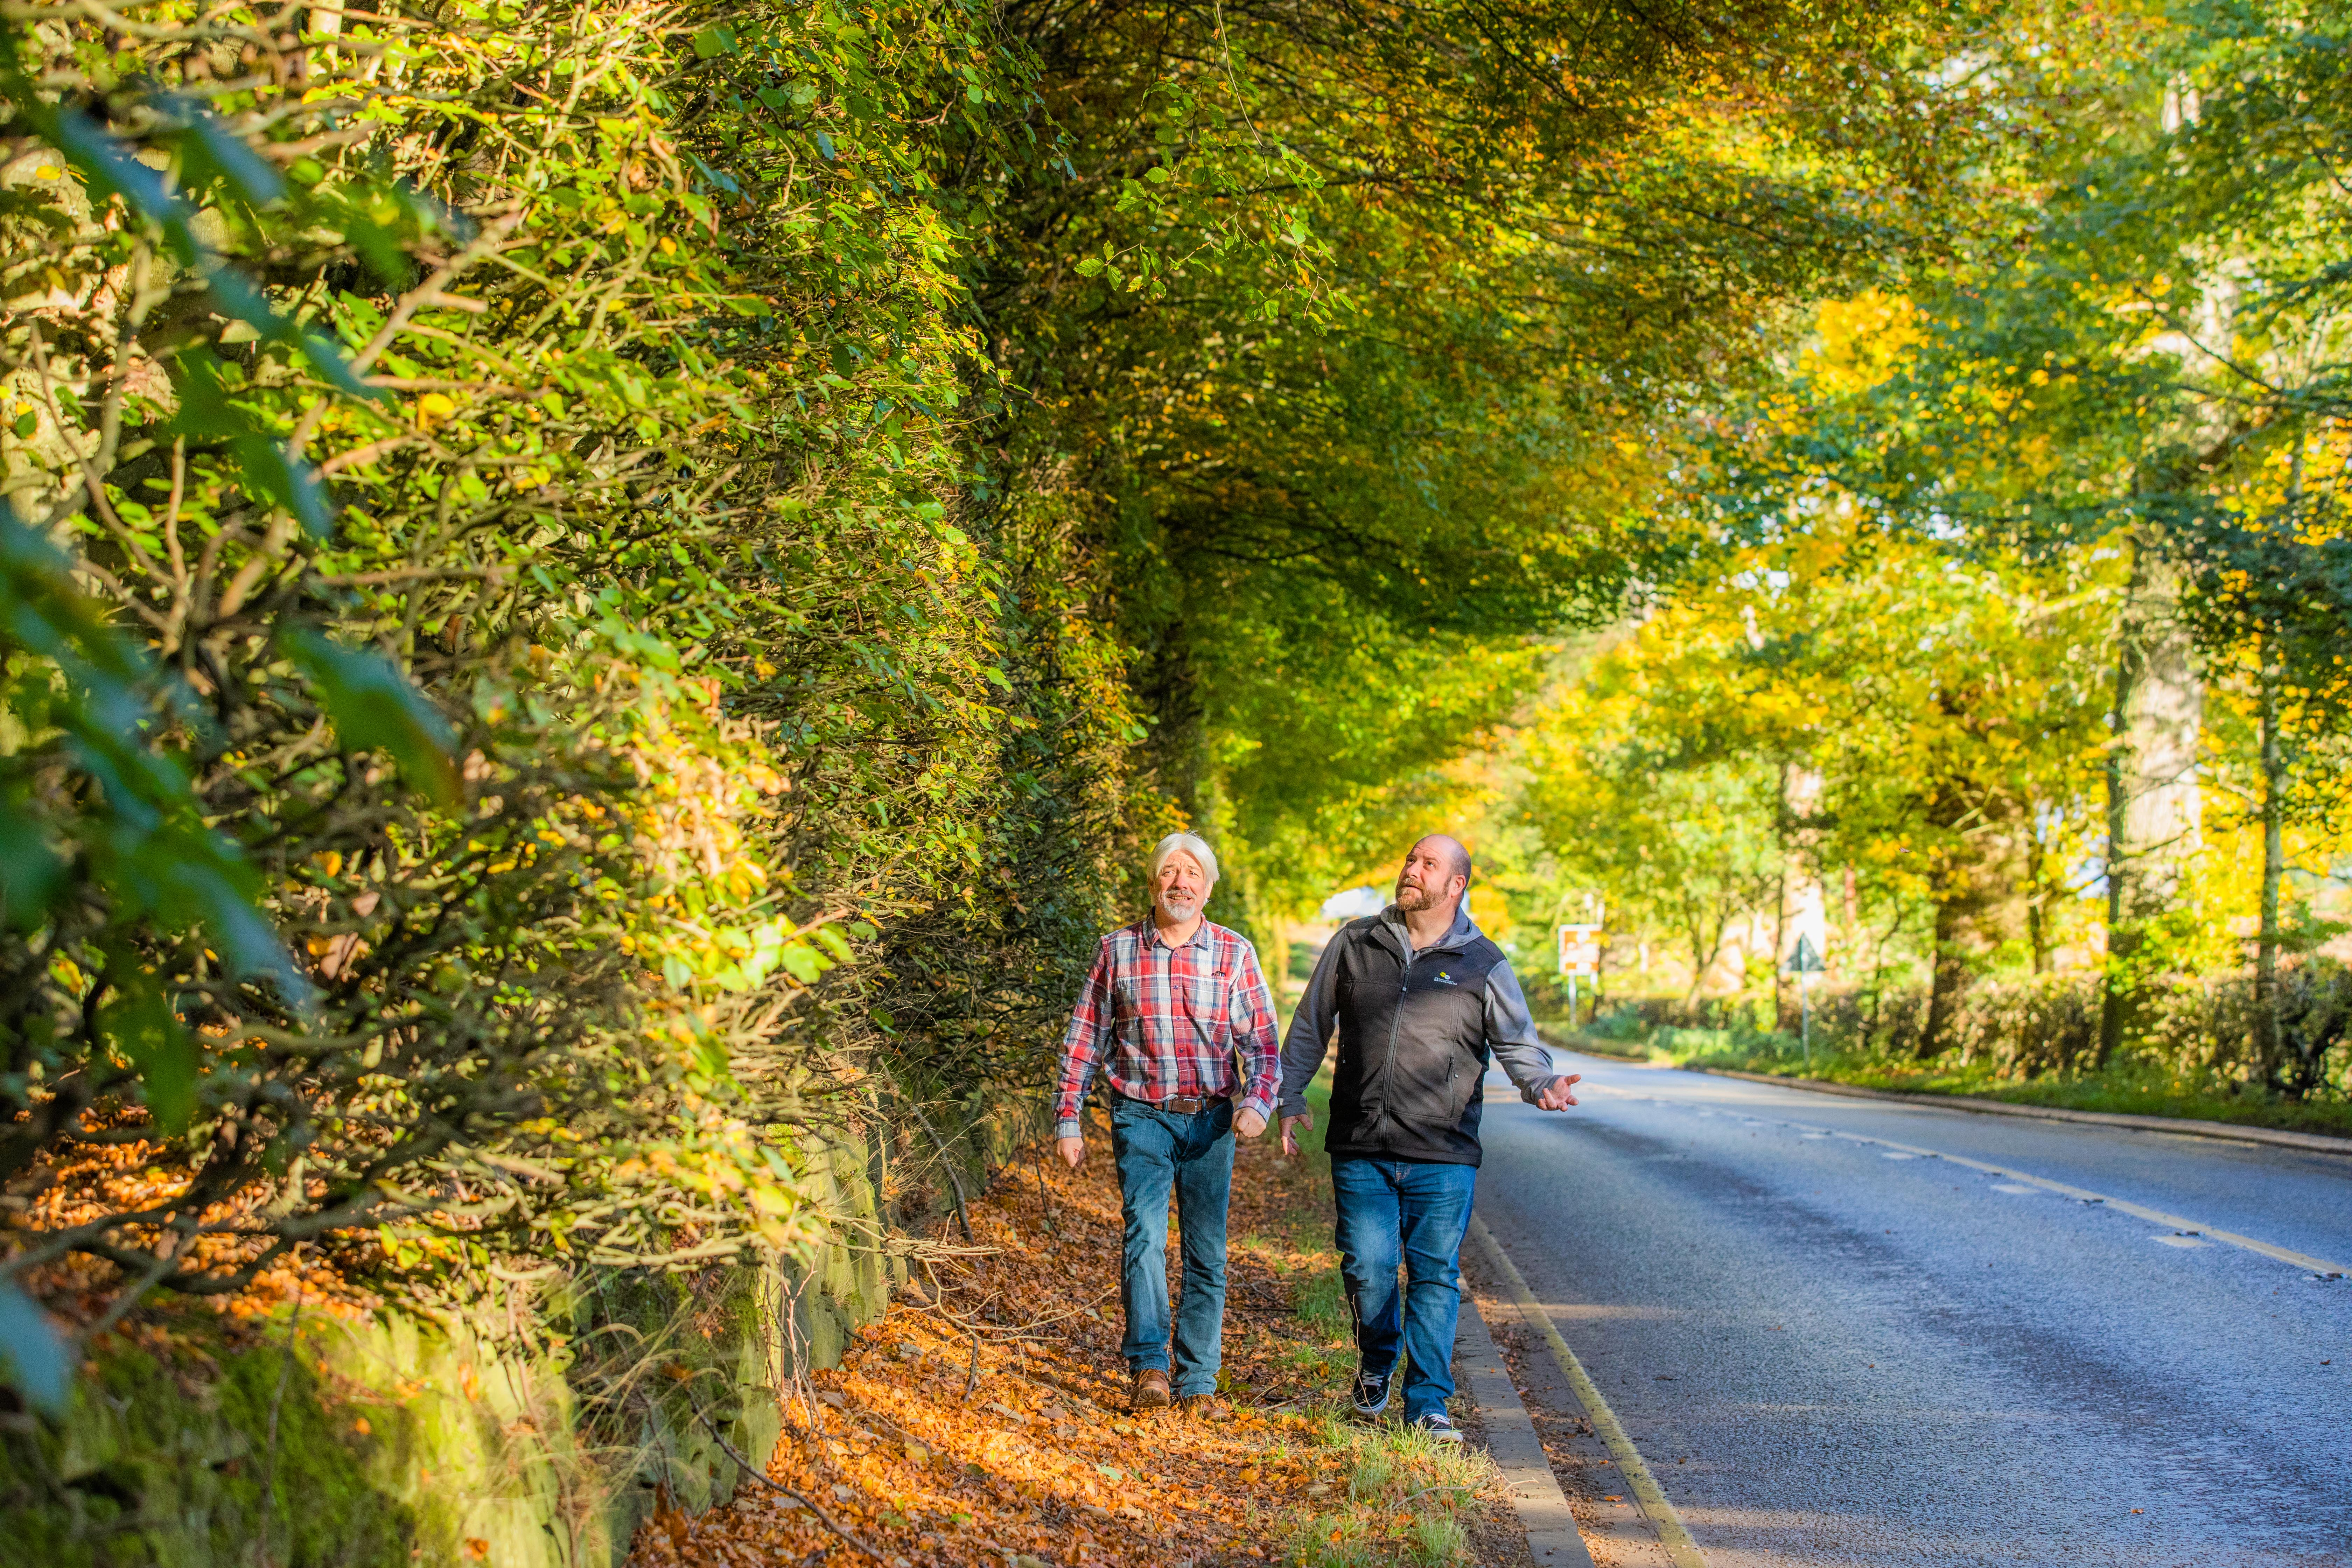 Councillors Grant Laing and Tom McEwan visit famous Meikleour Beech Hedge ahead of trim work.